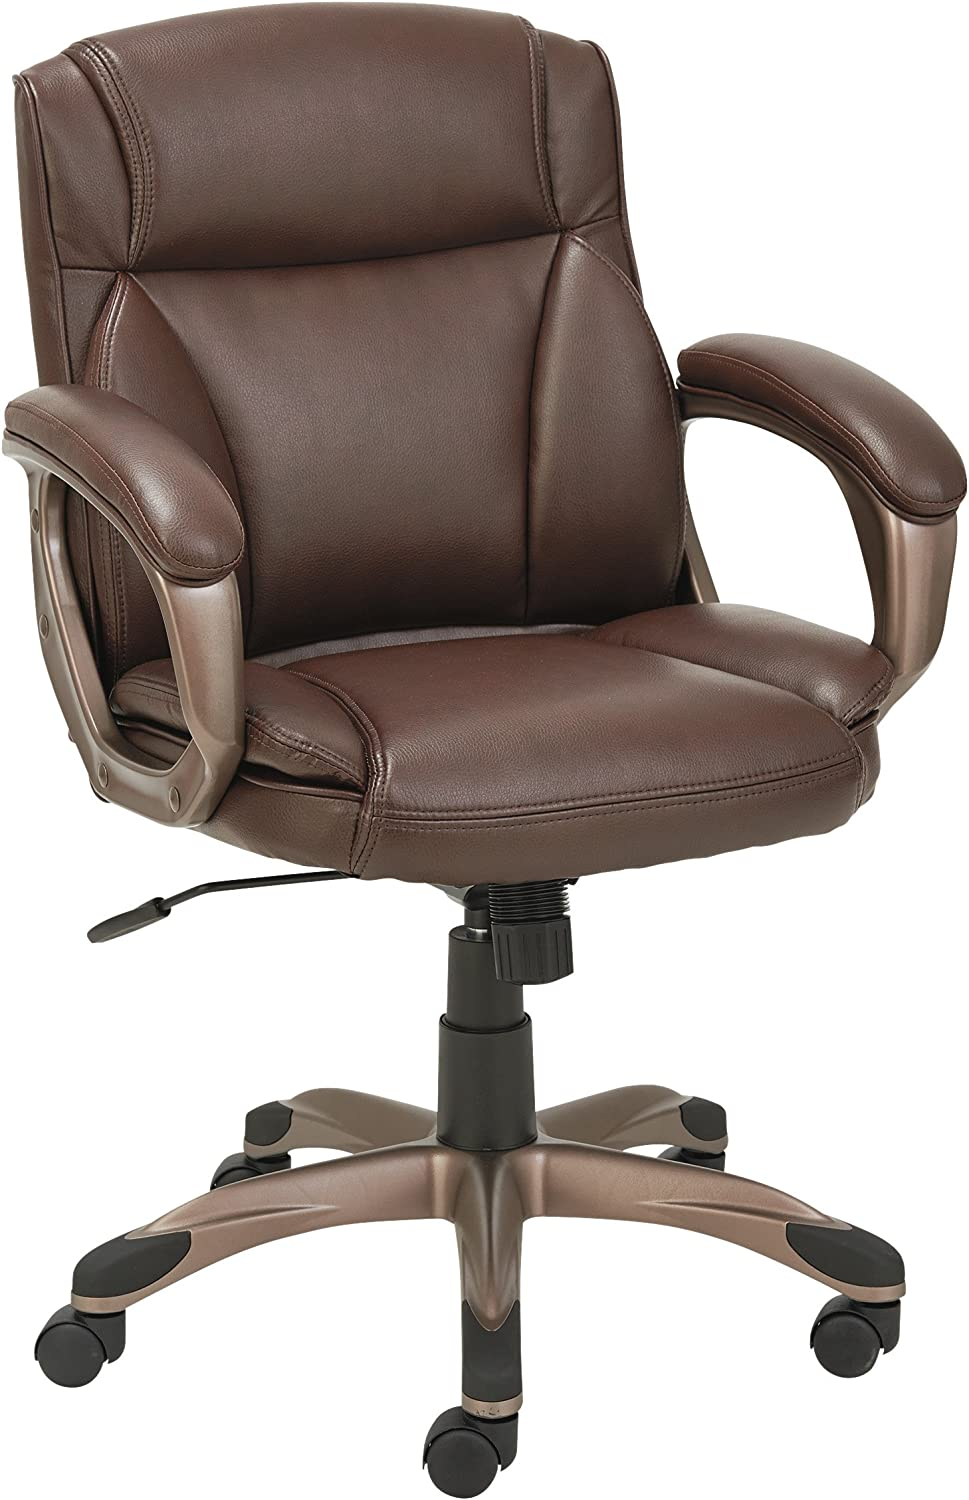 Alera ALE Veon Series Low-Back Leather Task Chair w Coil Spring Cushion, Brown